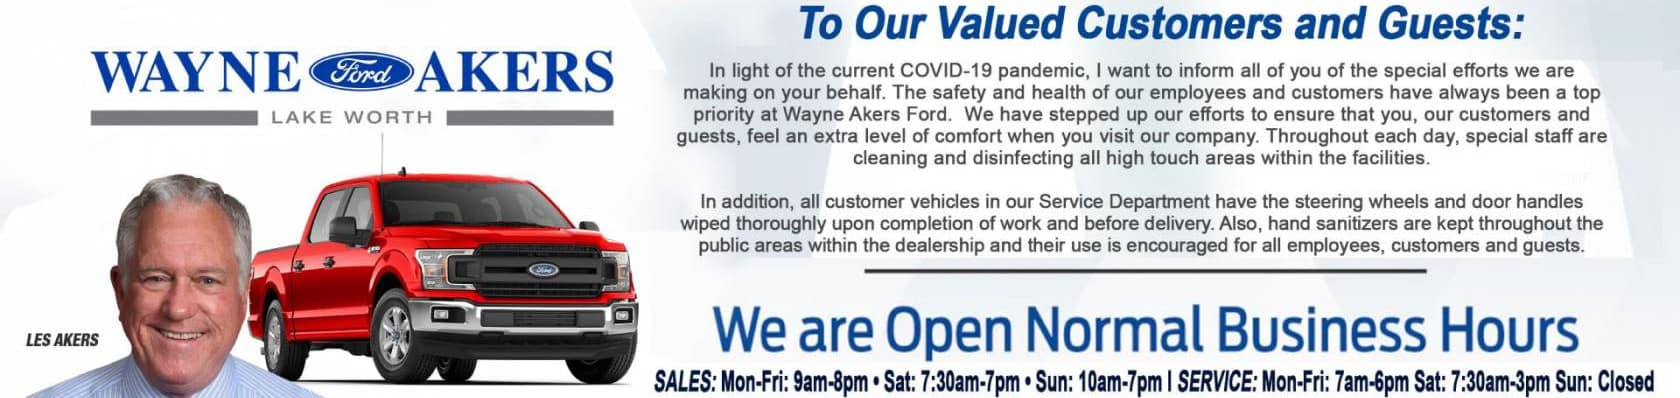 Wayne Akers Ford is Open for you